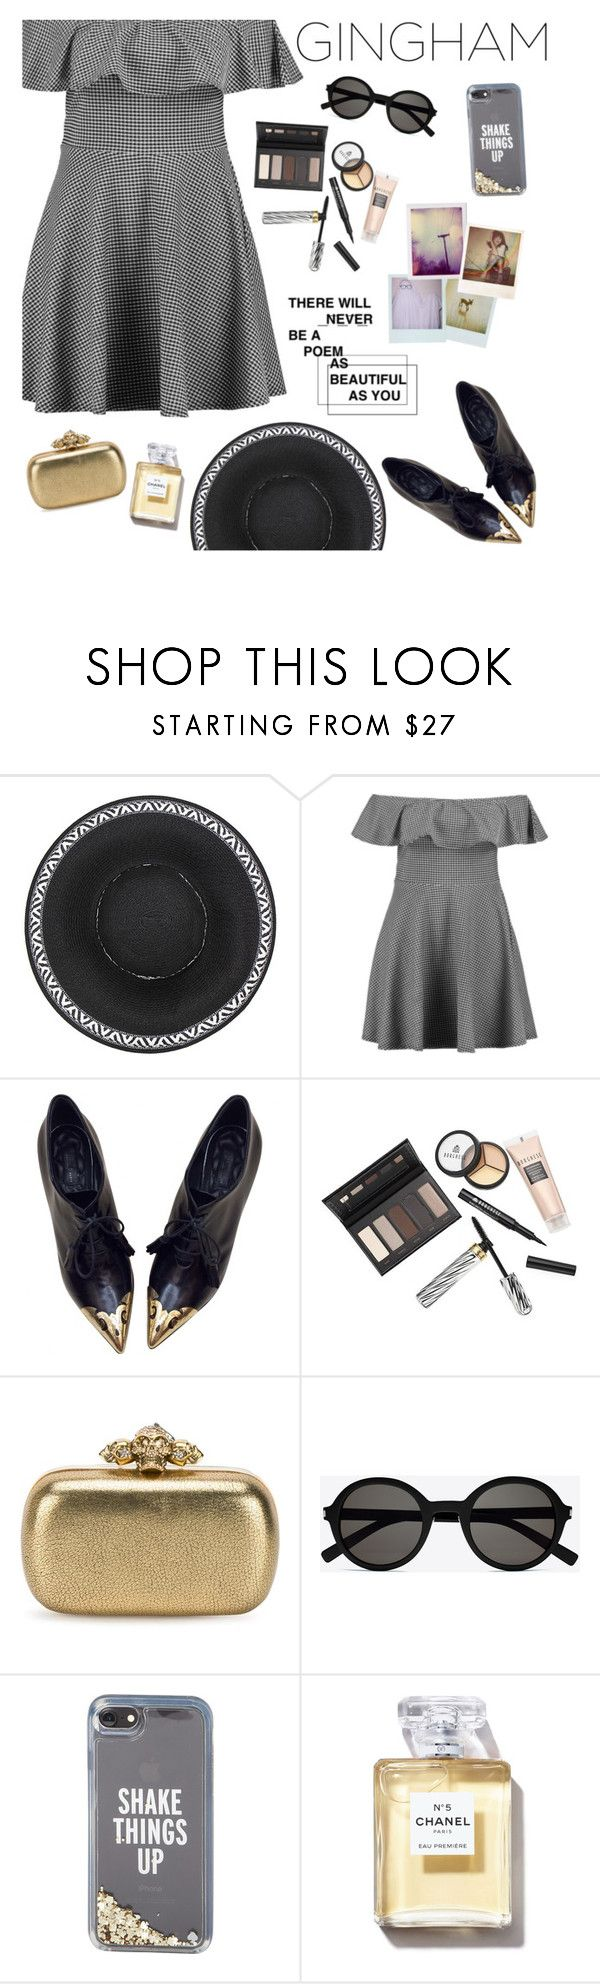 """""""Gingham Dress"""" by hardcore-alc ❤ liked on Polyvore featuring Boohoo, CÉLINE, Borghese, Alexander McQueen, Yves Saint Laurent, Kate Spade, Polaroid and gingham"""